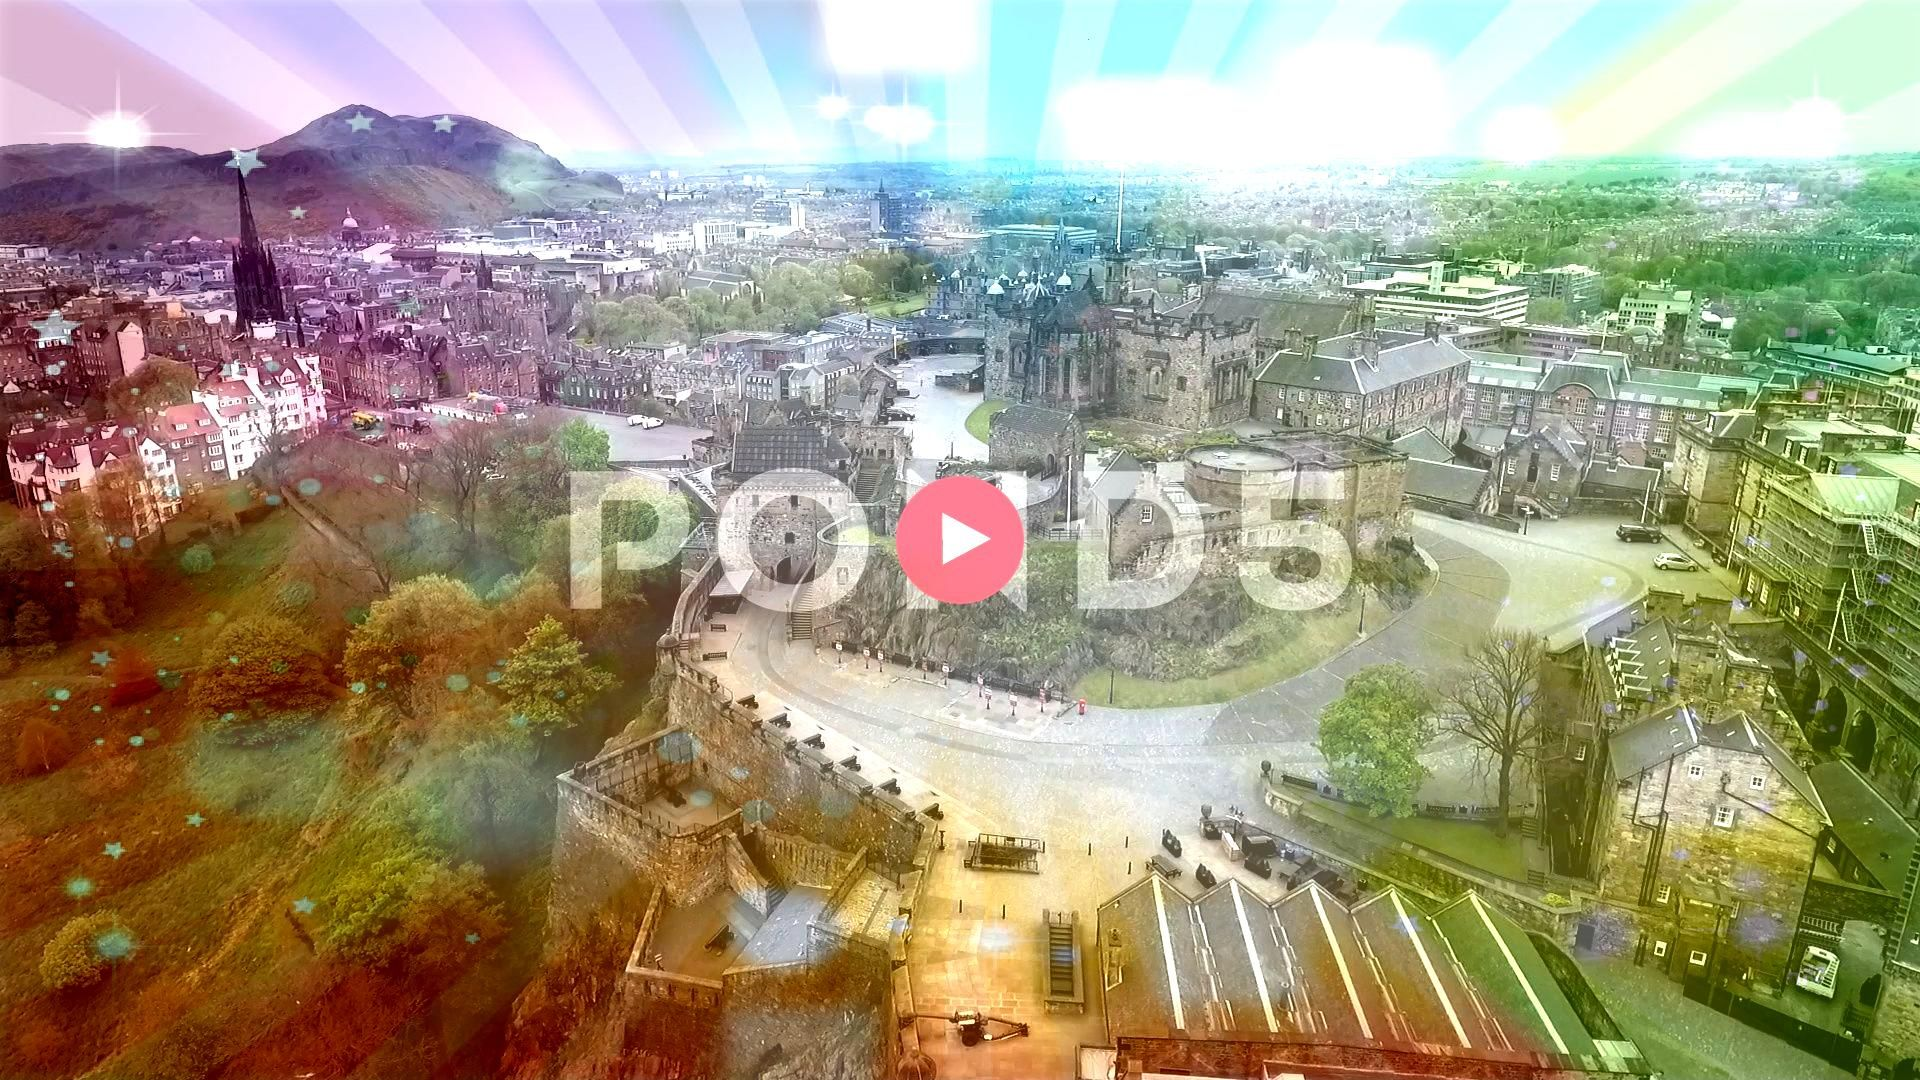 city scotland the historic Castle Rock cloudy Day Aerial shot Stock Footage historicCastleRockEdinburghEdinburgh city scotland the historic Castle Rock cloudy Day Aerial...